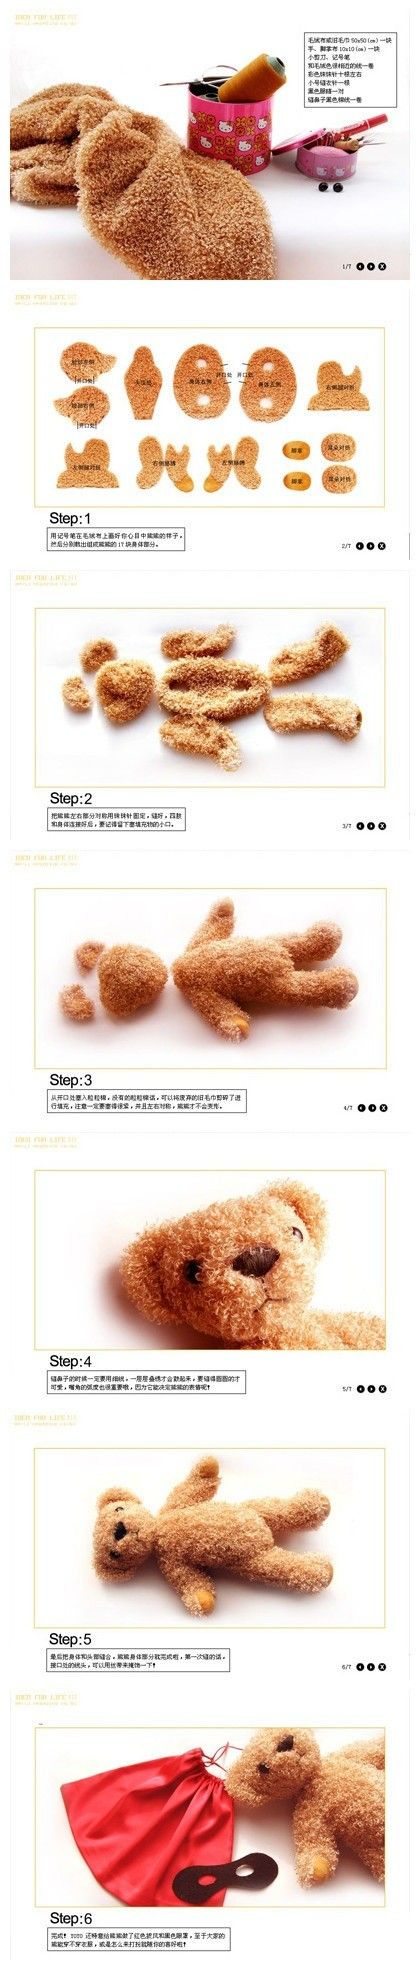 So this is how I will make a teddy bear.